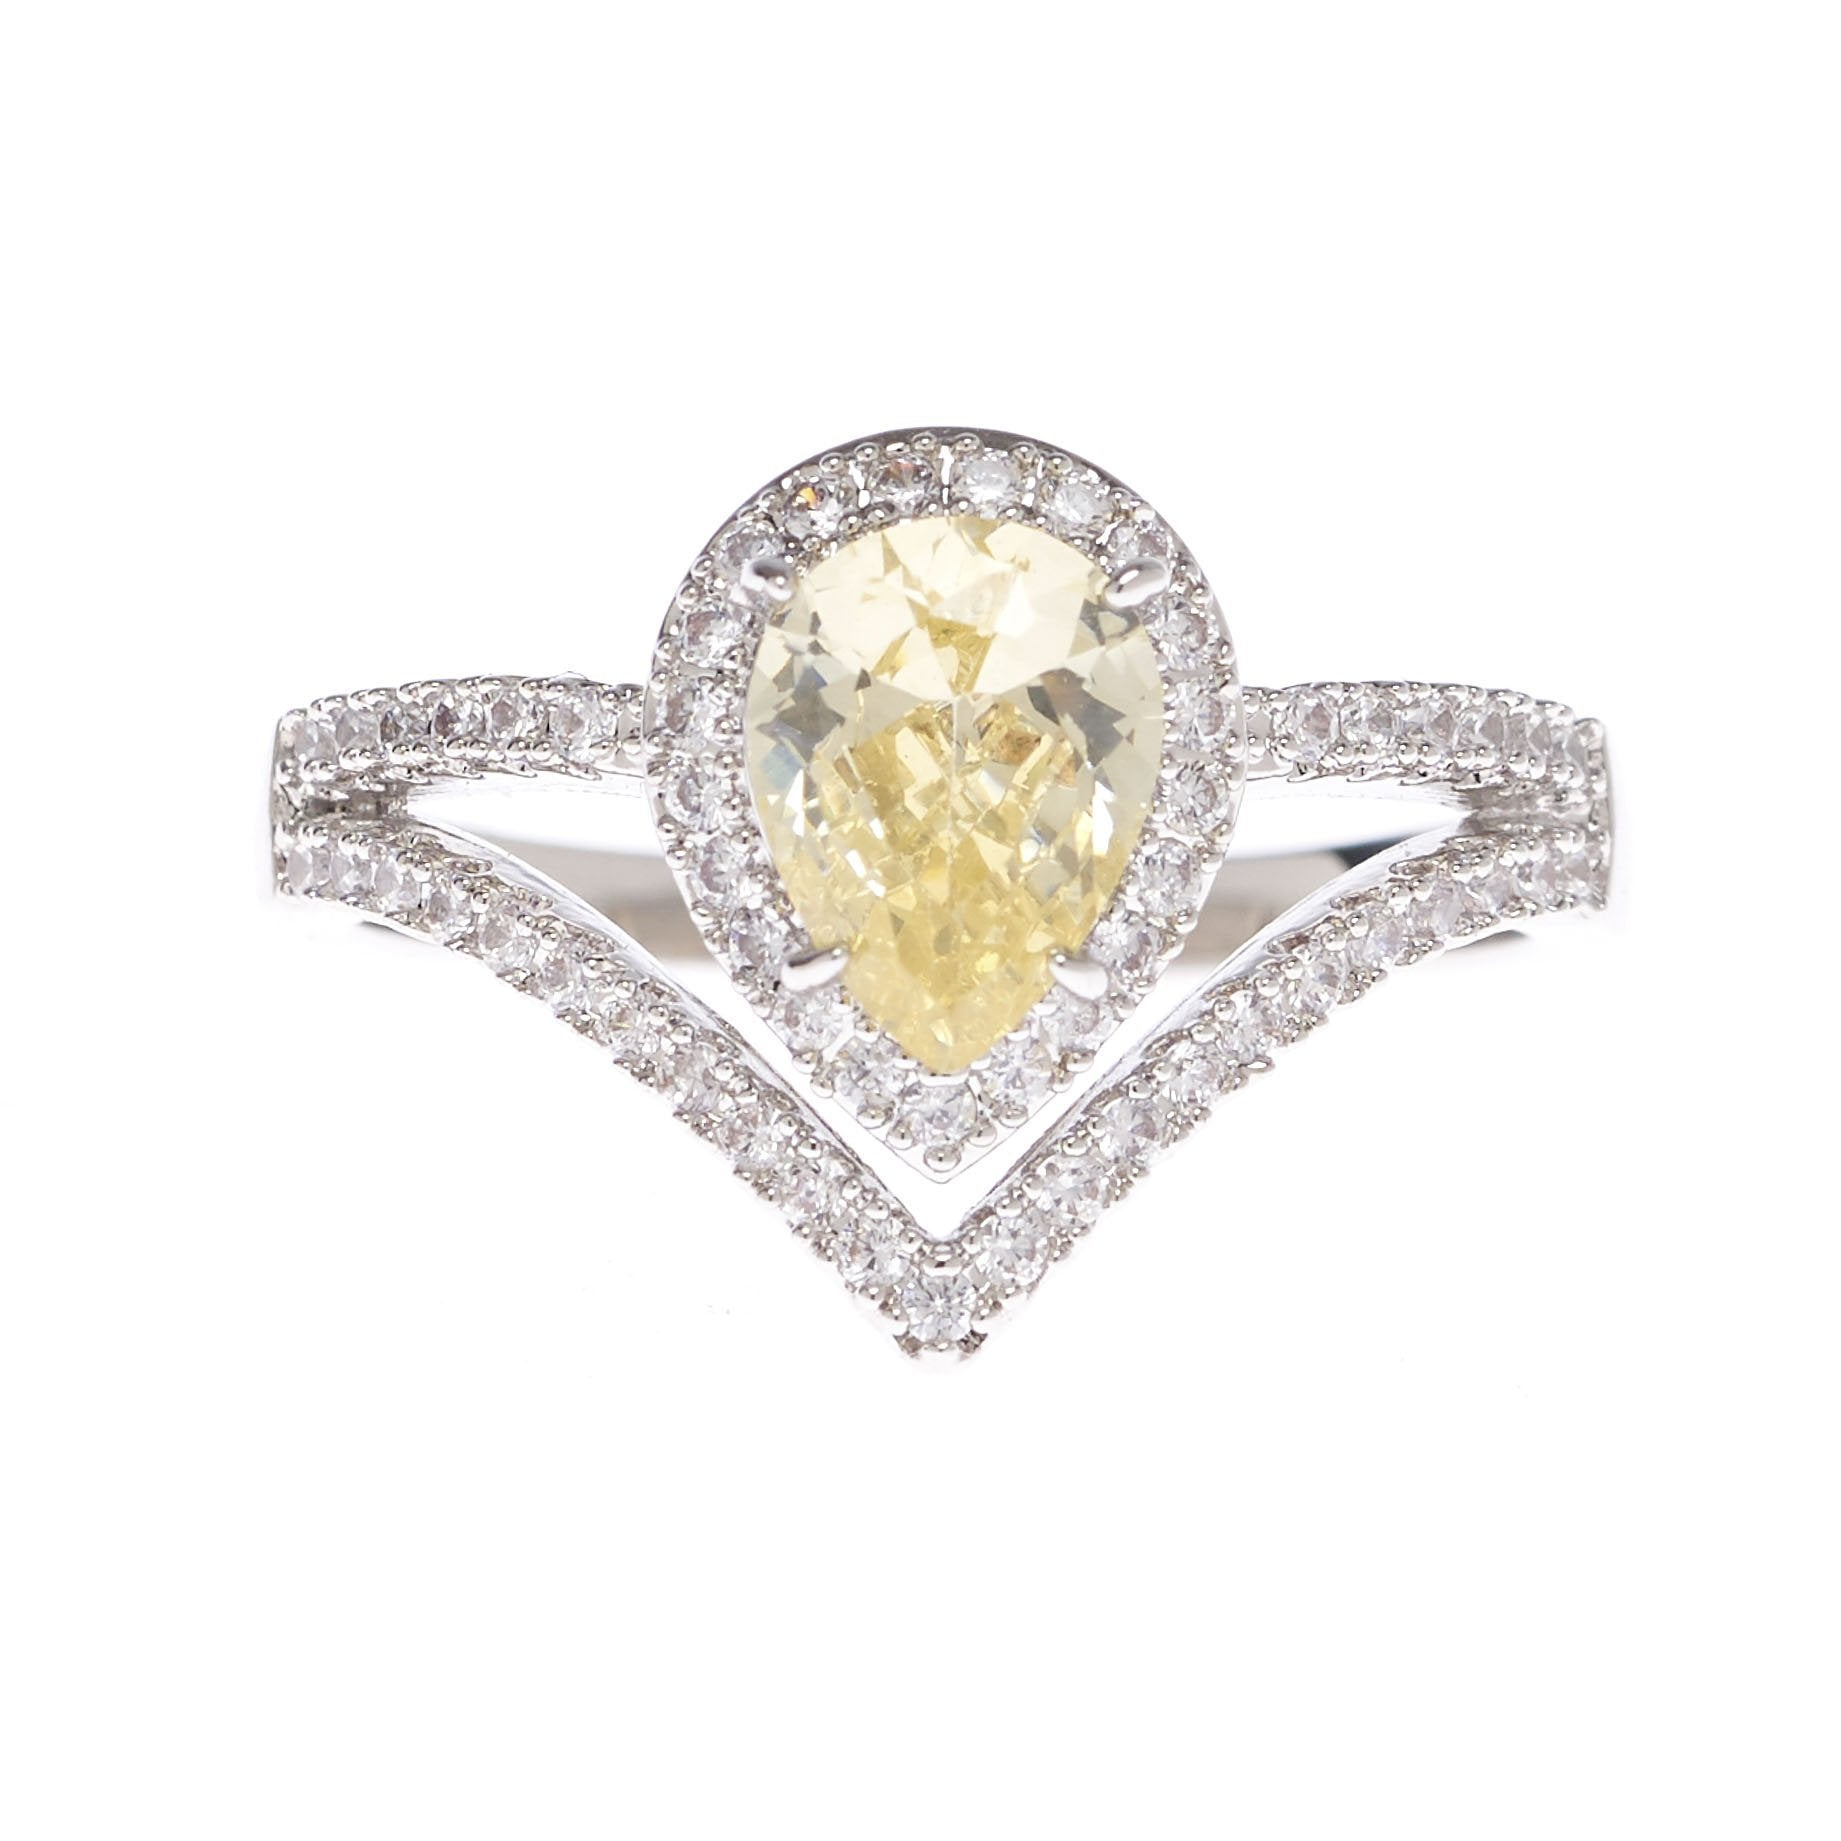 replica hilton cz celebrity rings addiction canary engagement yellow ring paris eve inspired s